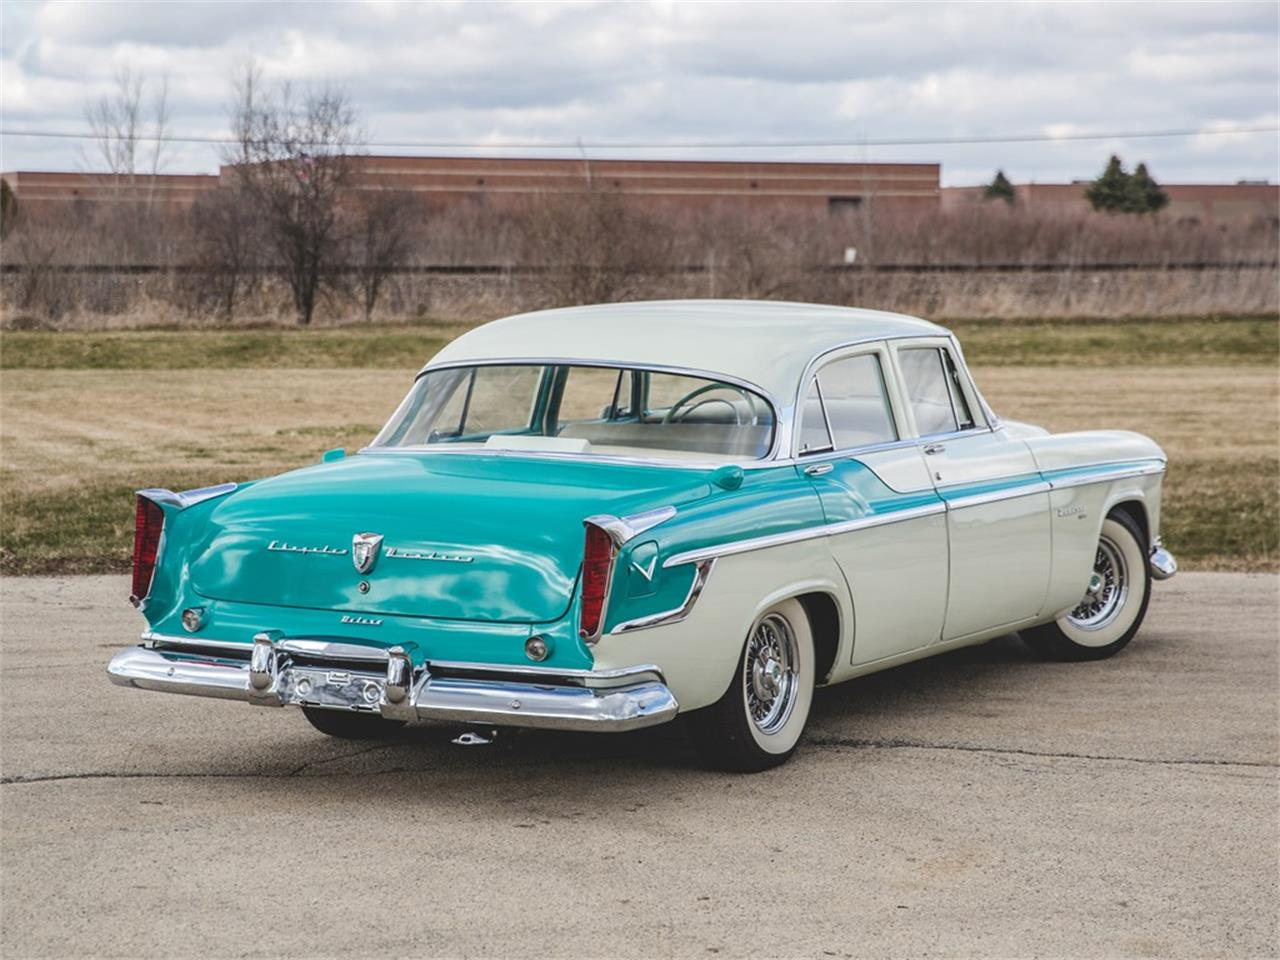 Large Picture of Classic 1955 Chrysler Windsor located in Auburn Indiana Auction Vehicle - N8RK